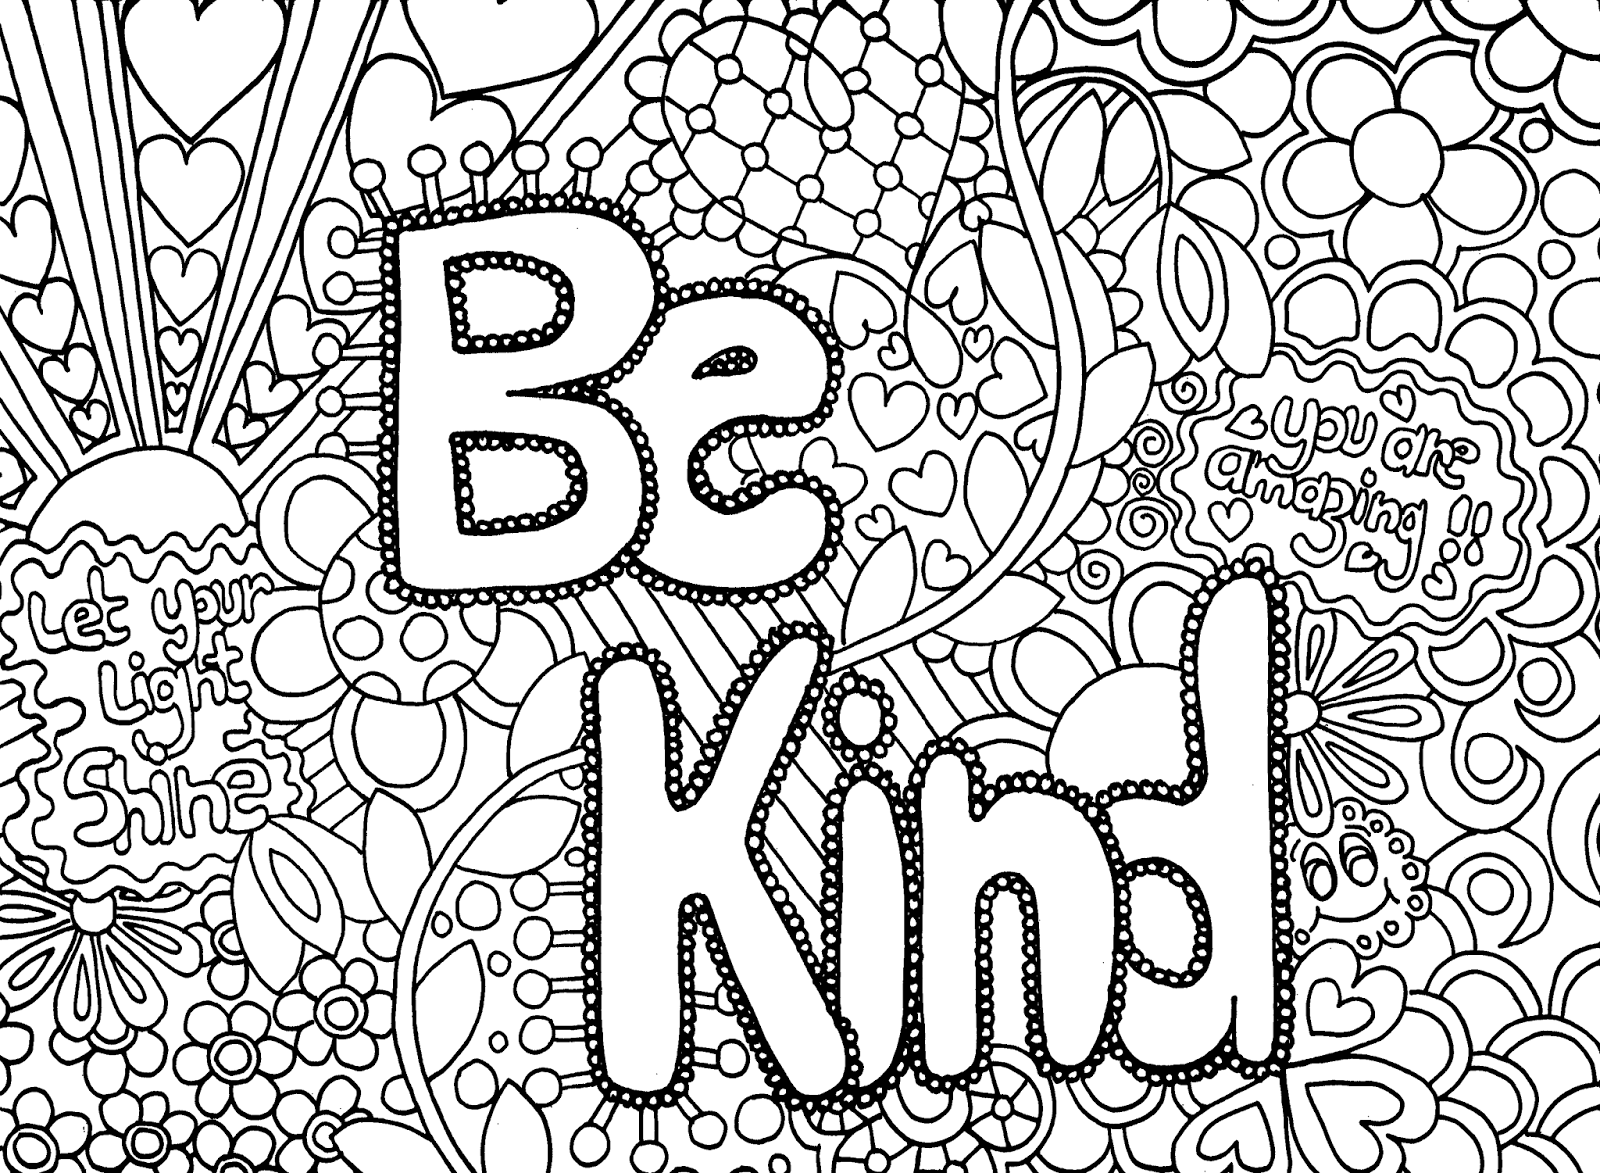 coloring adults pages printable coloring pages for adults 15 free designs coloring pages adults